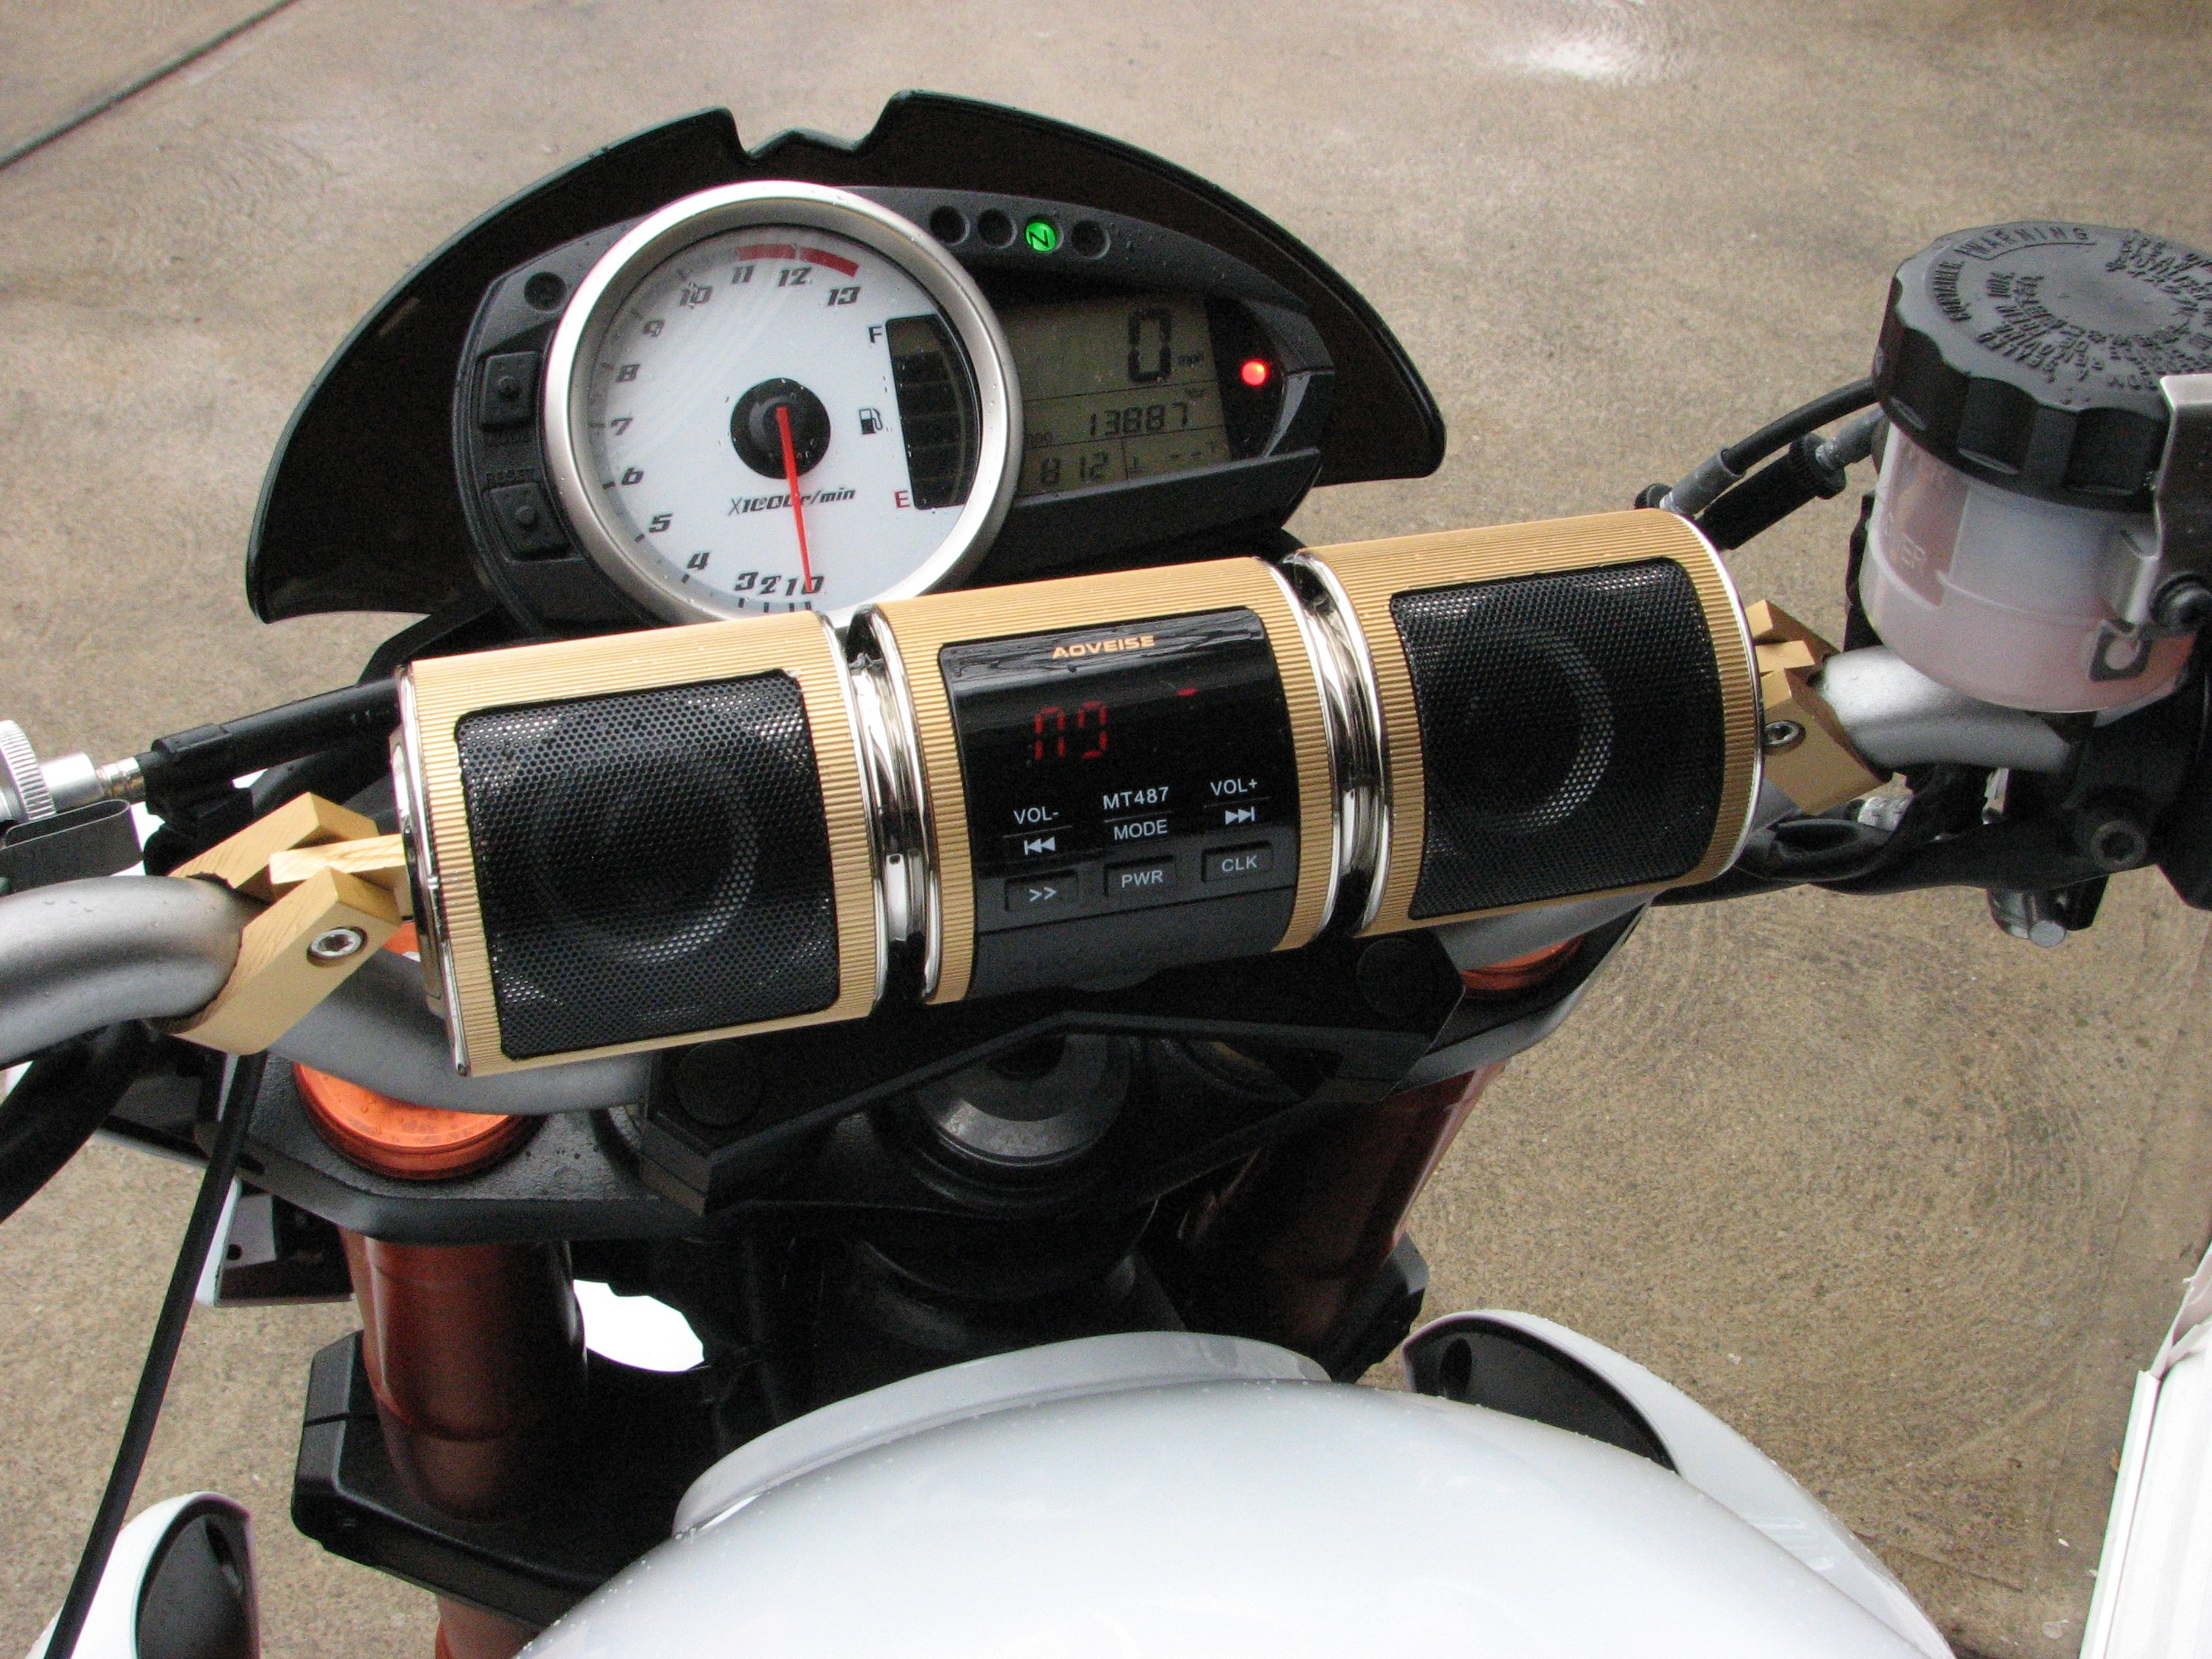 7 Best Motorcycle Radios (Must Read Reviews) For September 2019